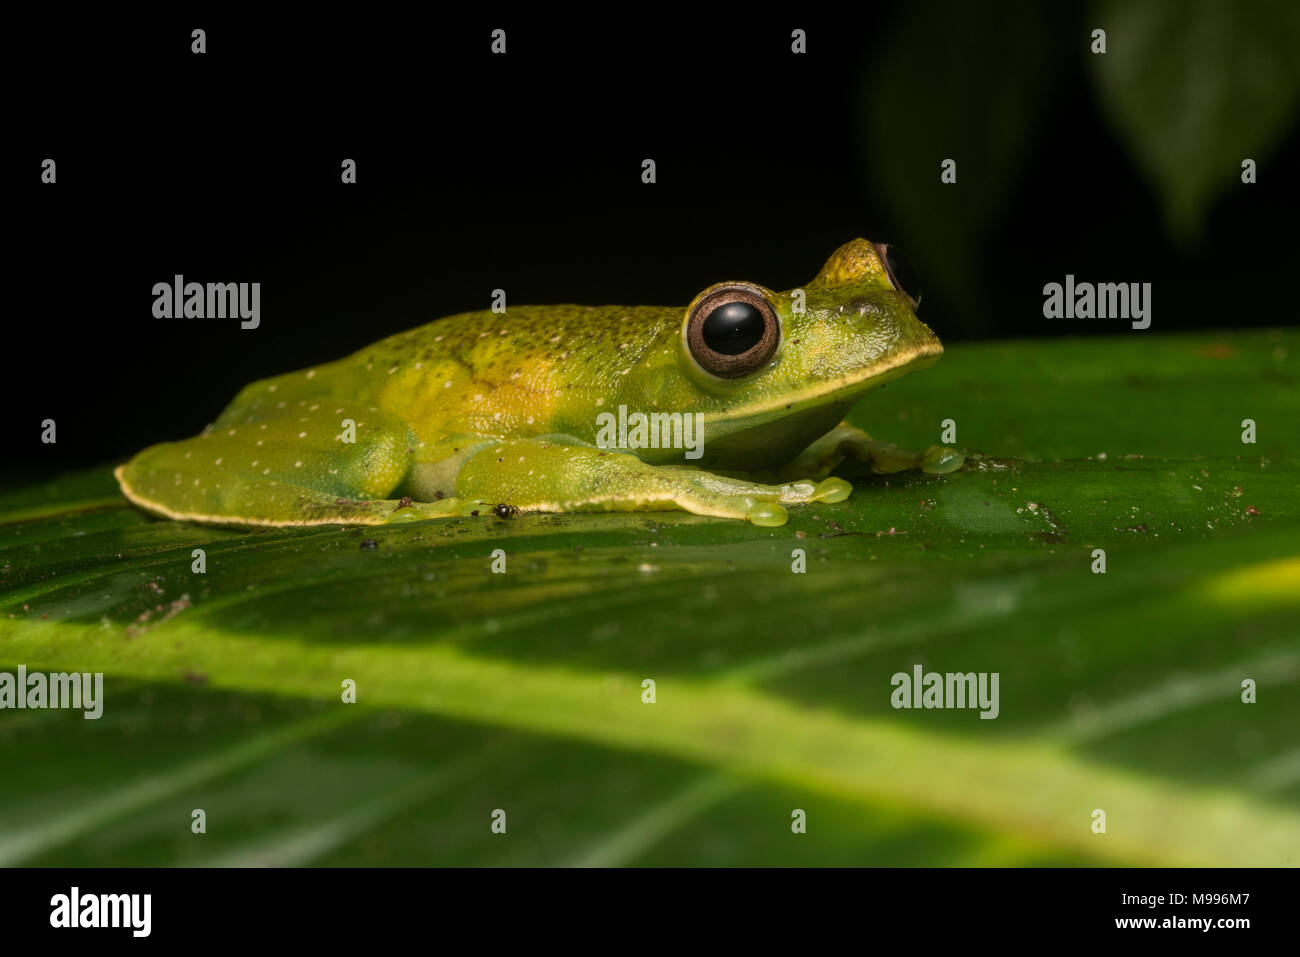 A elusive tree frog, the roque treefrog (Hyloscirtus phyllognathus) from Peru is very difficult to find in its natural habitat as its very secretive. - Stock Image